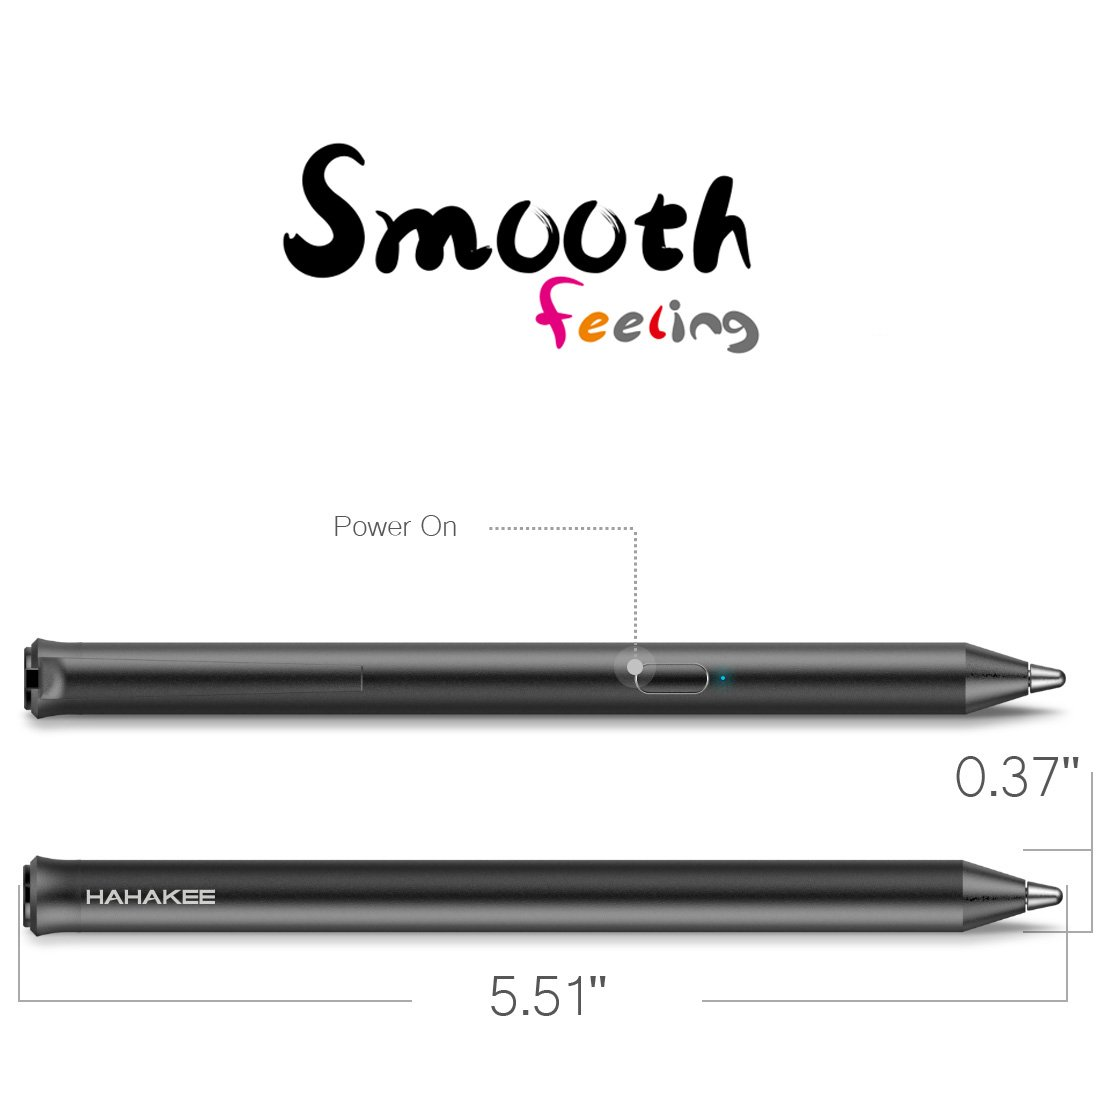 HAHAKEE iPad Stylus Pen, No Bluetooth Connection, Support 40hrs Working & 30Days Standby, High Precision Rechargeable Stylus for ipad Series, Passed FCC Certification by HAHAKEE-life (Image #5)